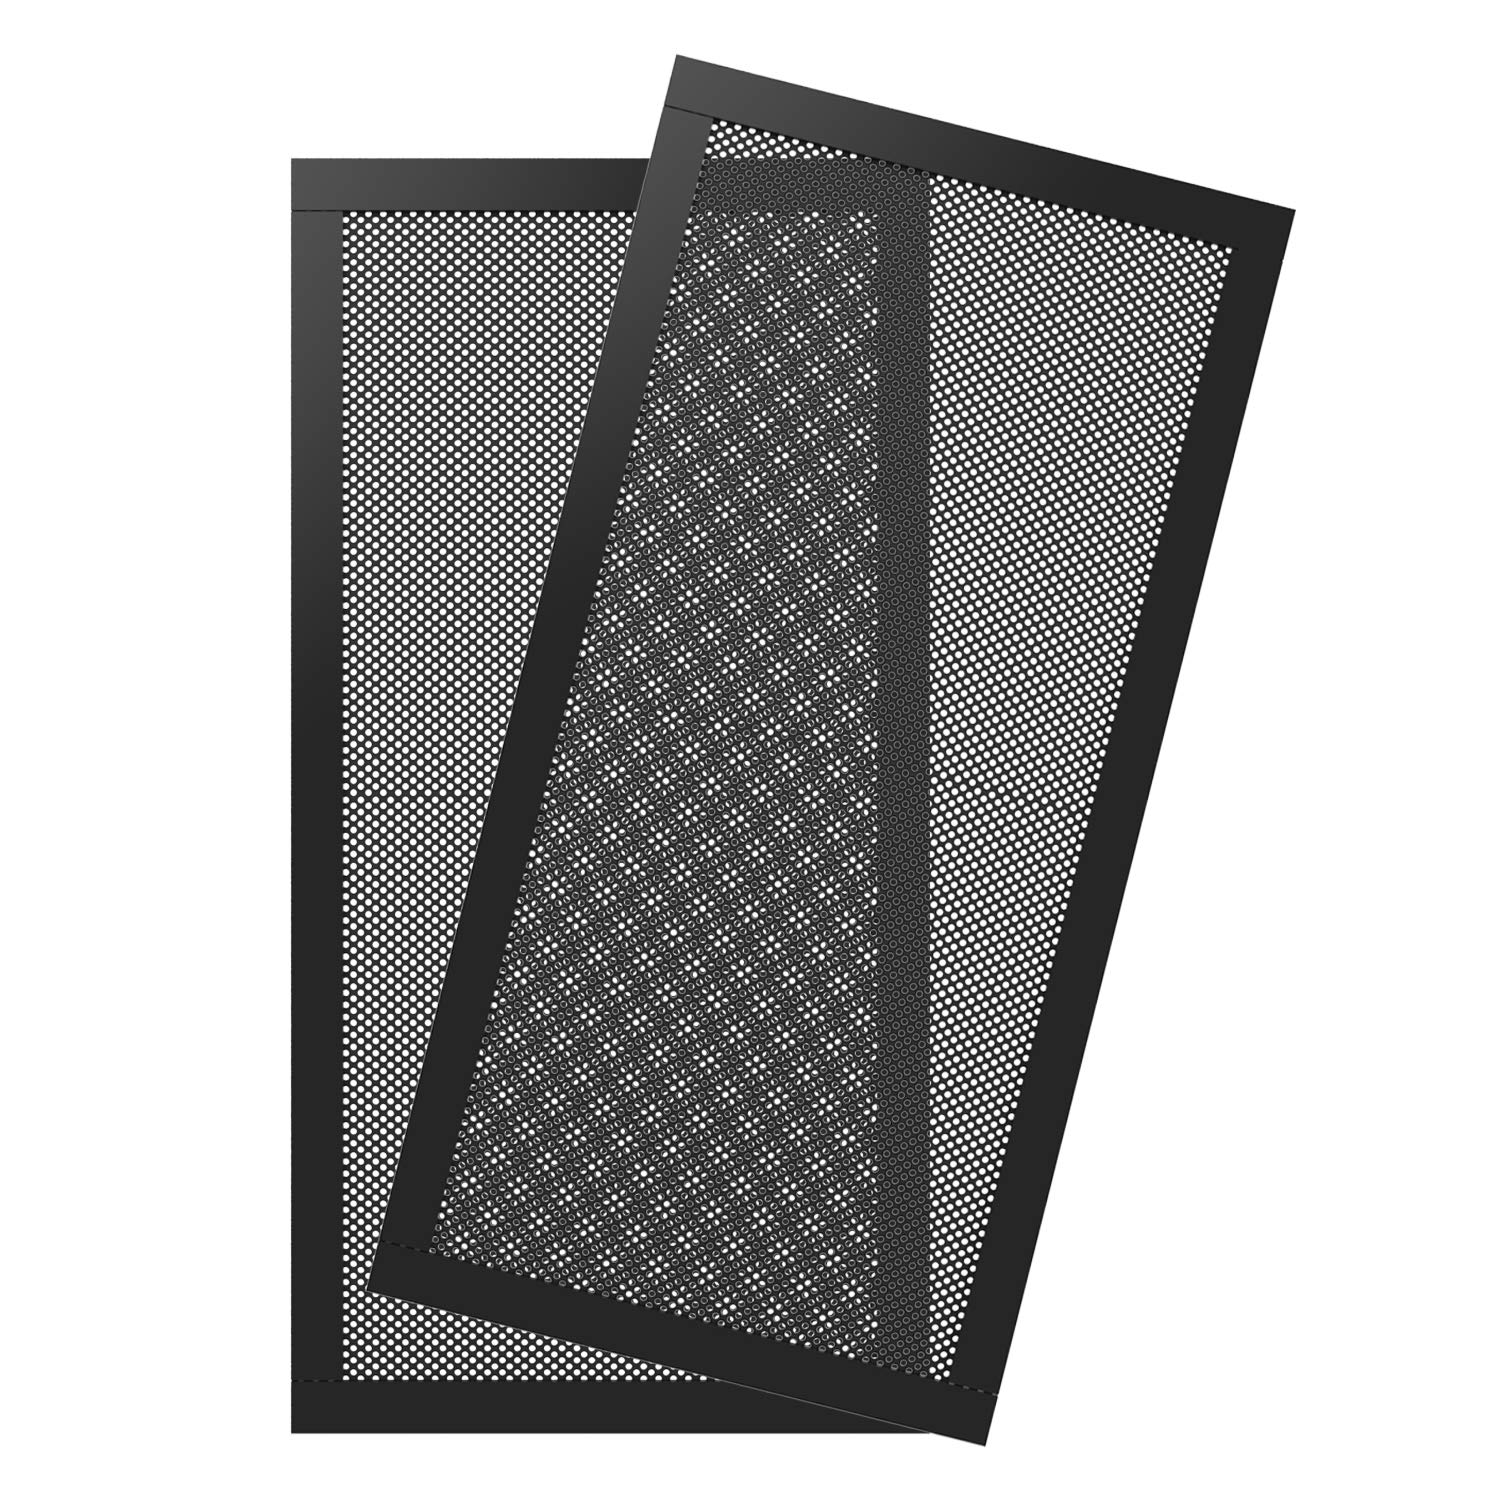 MoKo 120 x 240mm Dust Filter for Computer Cooler Fan, [2 Pack] Magnetic Frame PC Fan Dust Mesh PC Cooler Filter Dustproof PVC Cover Computer Fan Grills - Black